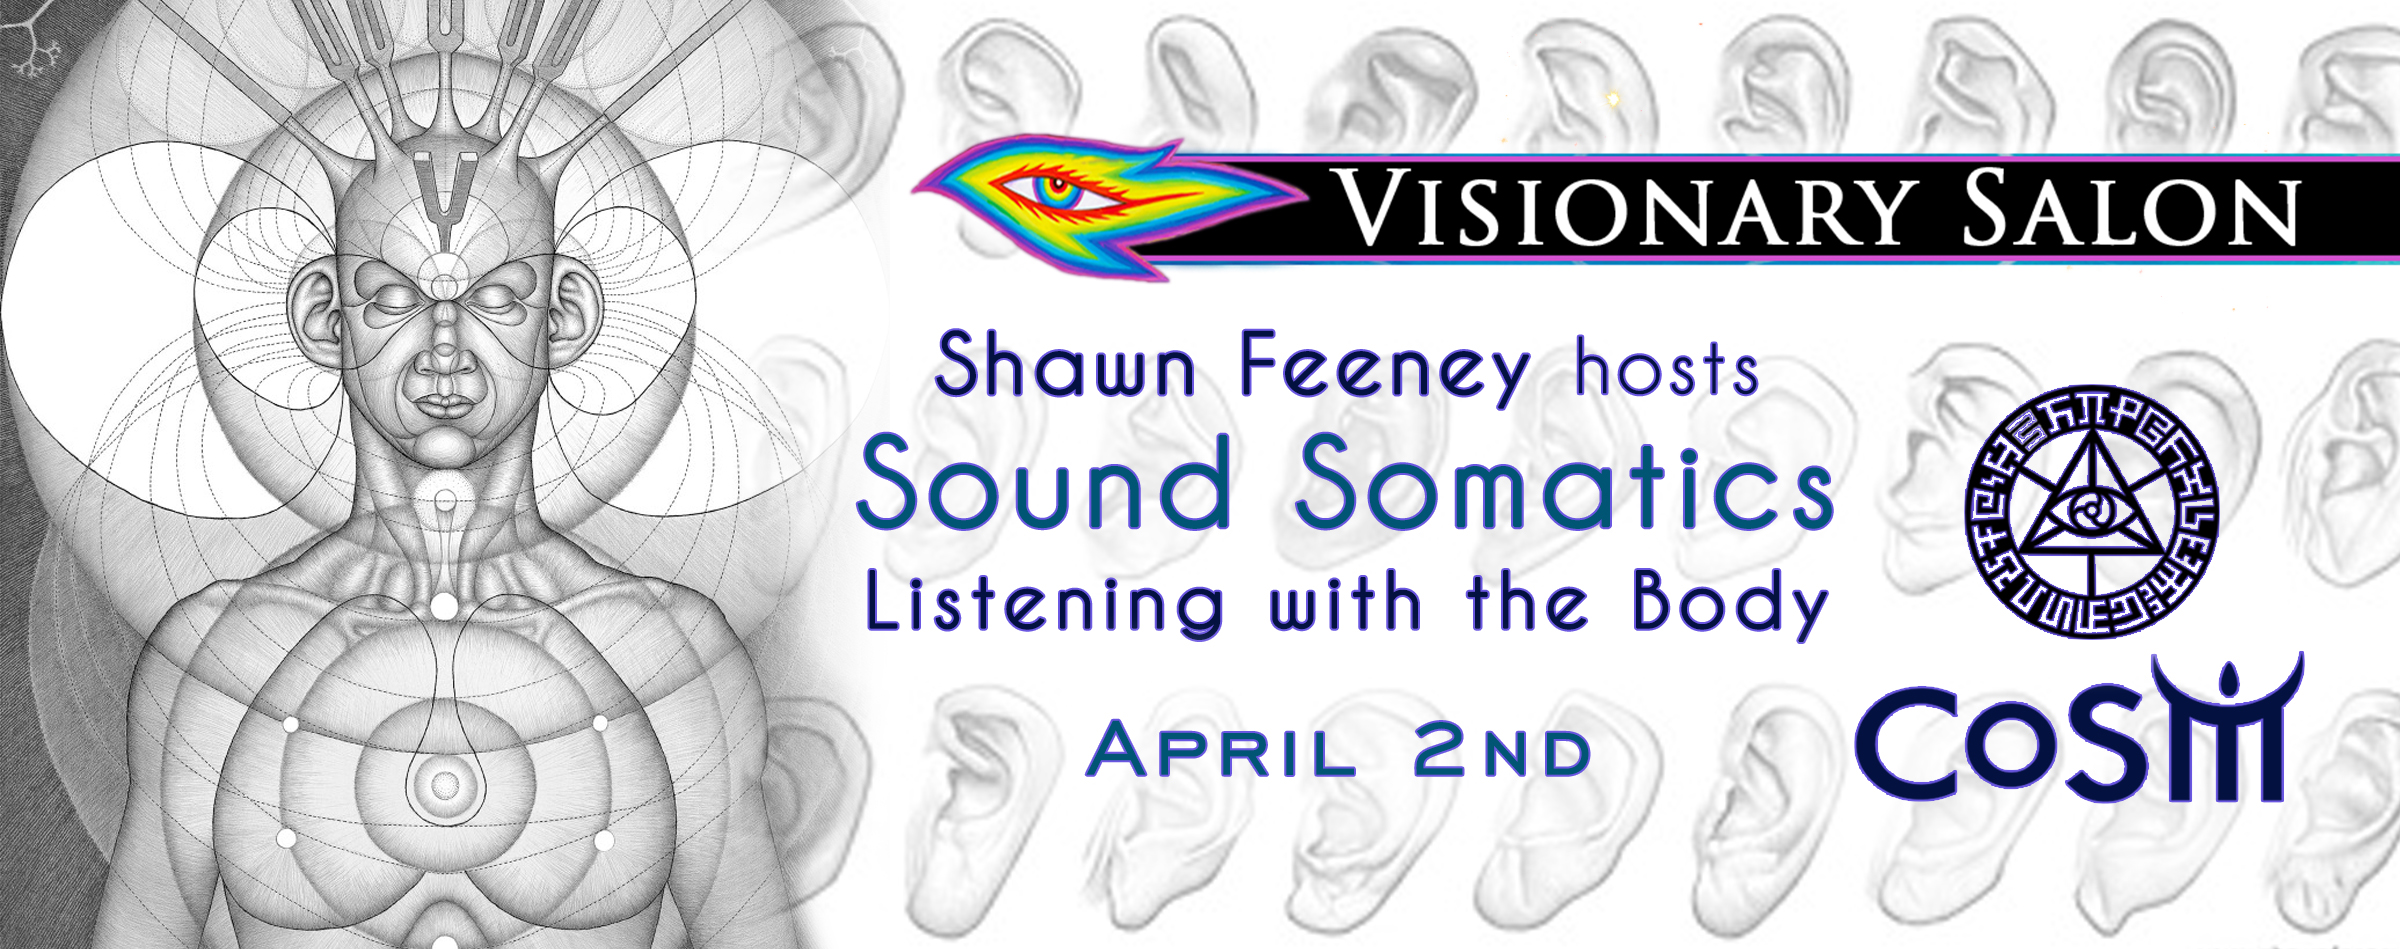 Visionary salon sound somatics with shawn feeney chapel for A visionary salon